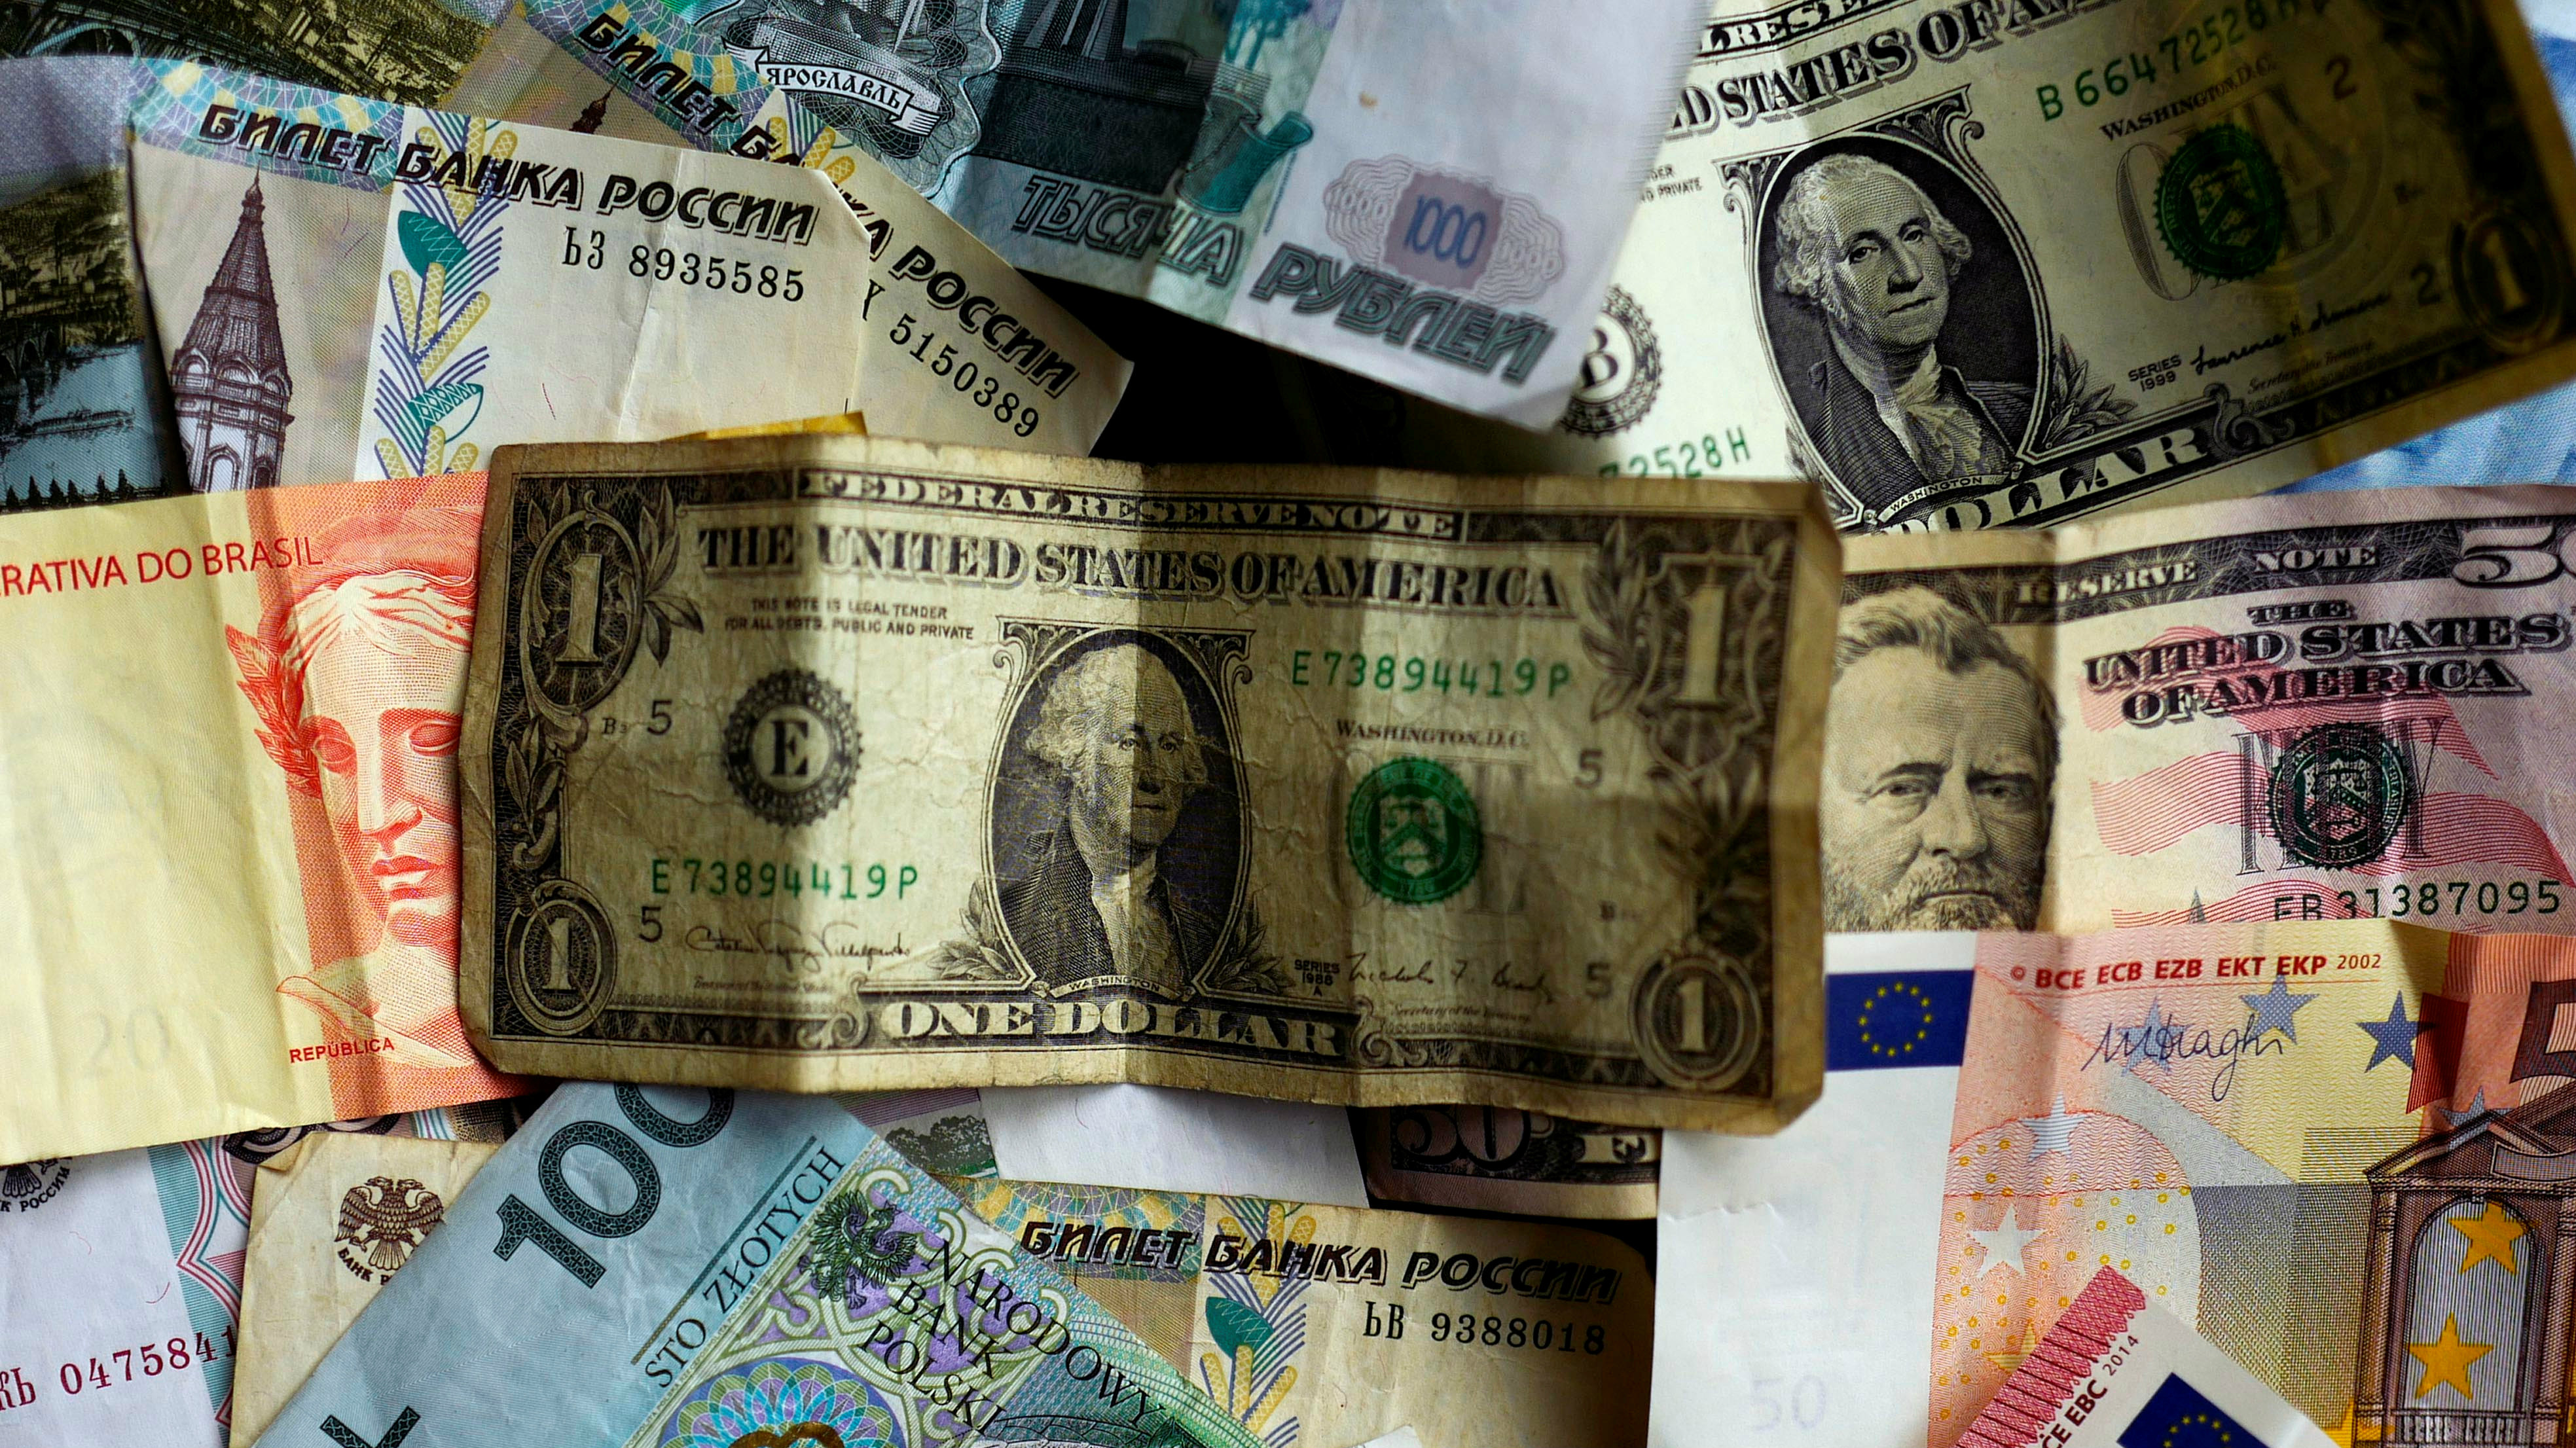 Bank notes of different currencies, including euro and US dollar,